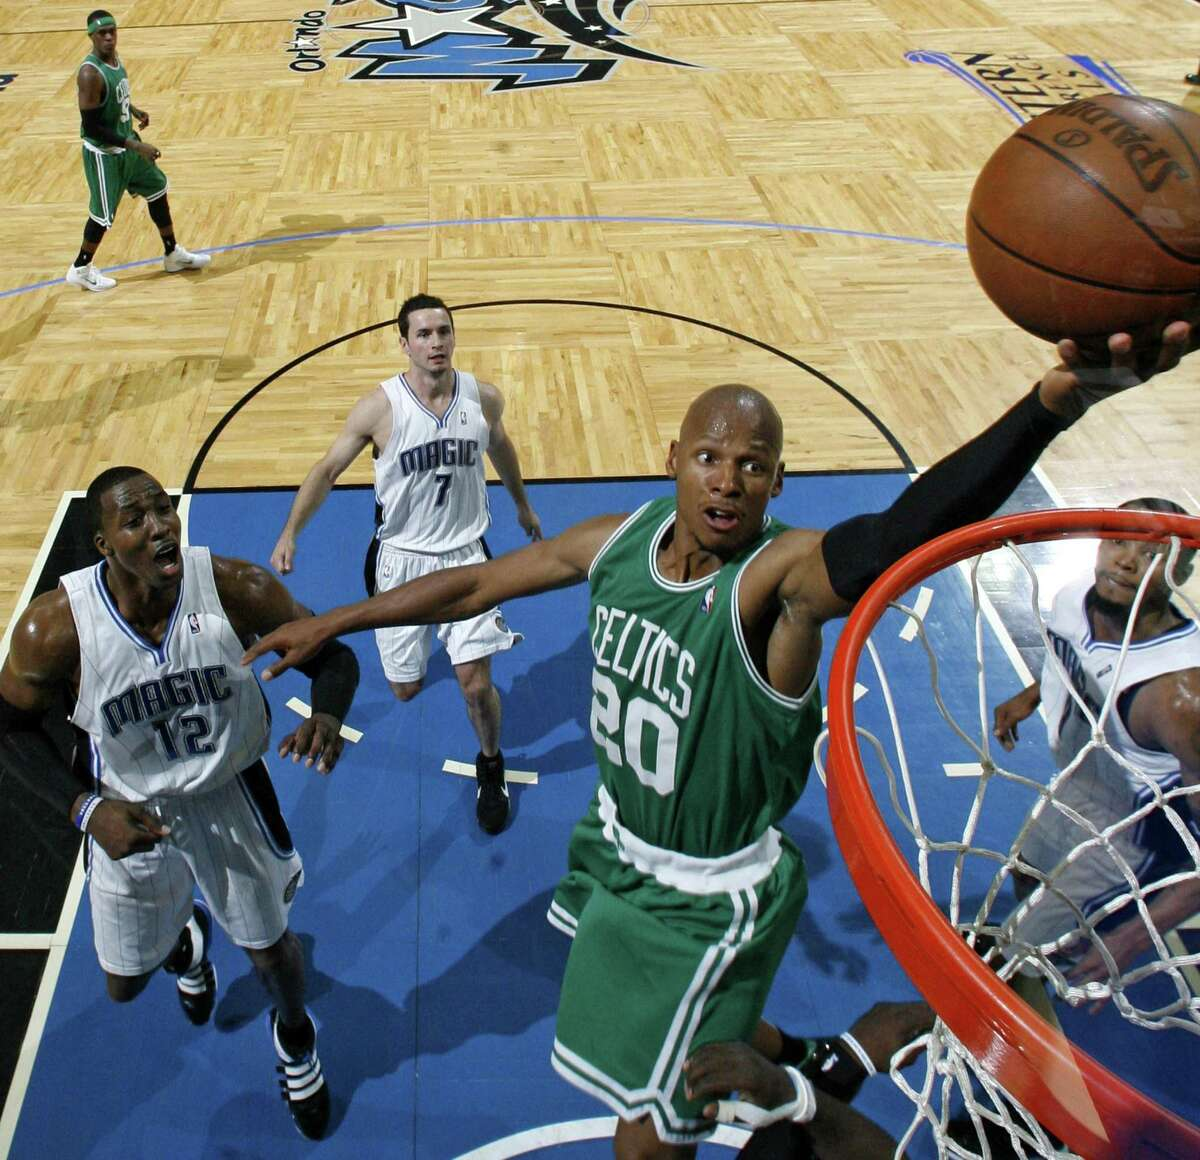 Ray Allen goes up for a shot past Orlando Magic's Dwight Howard, J.J. Redick, and Rashard Lewis during the first half in Game 1 of the NBA Eastern Conference finals on May 16, 2010.